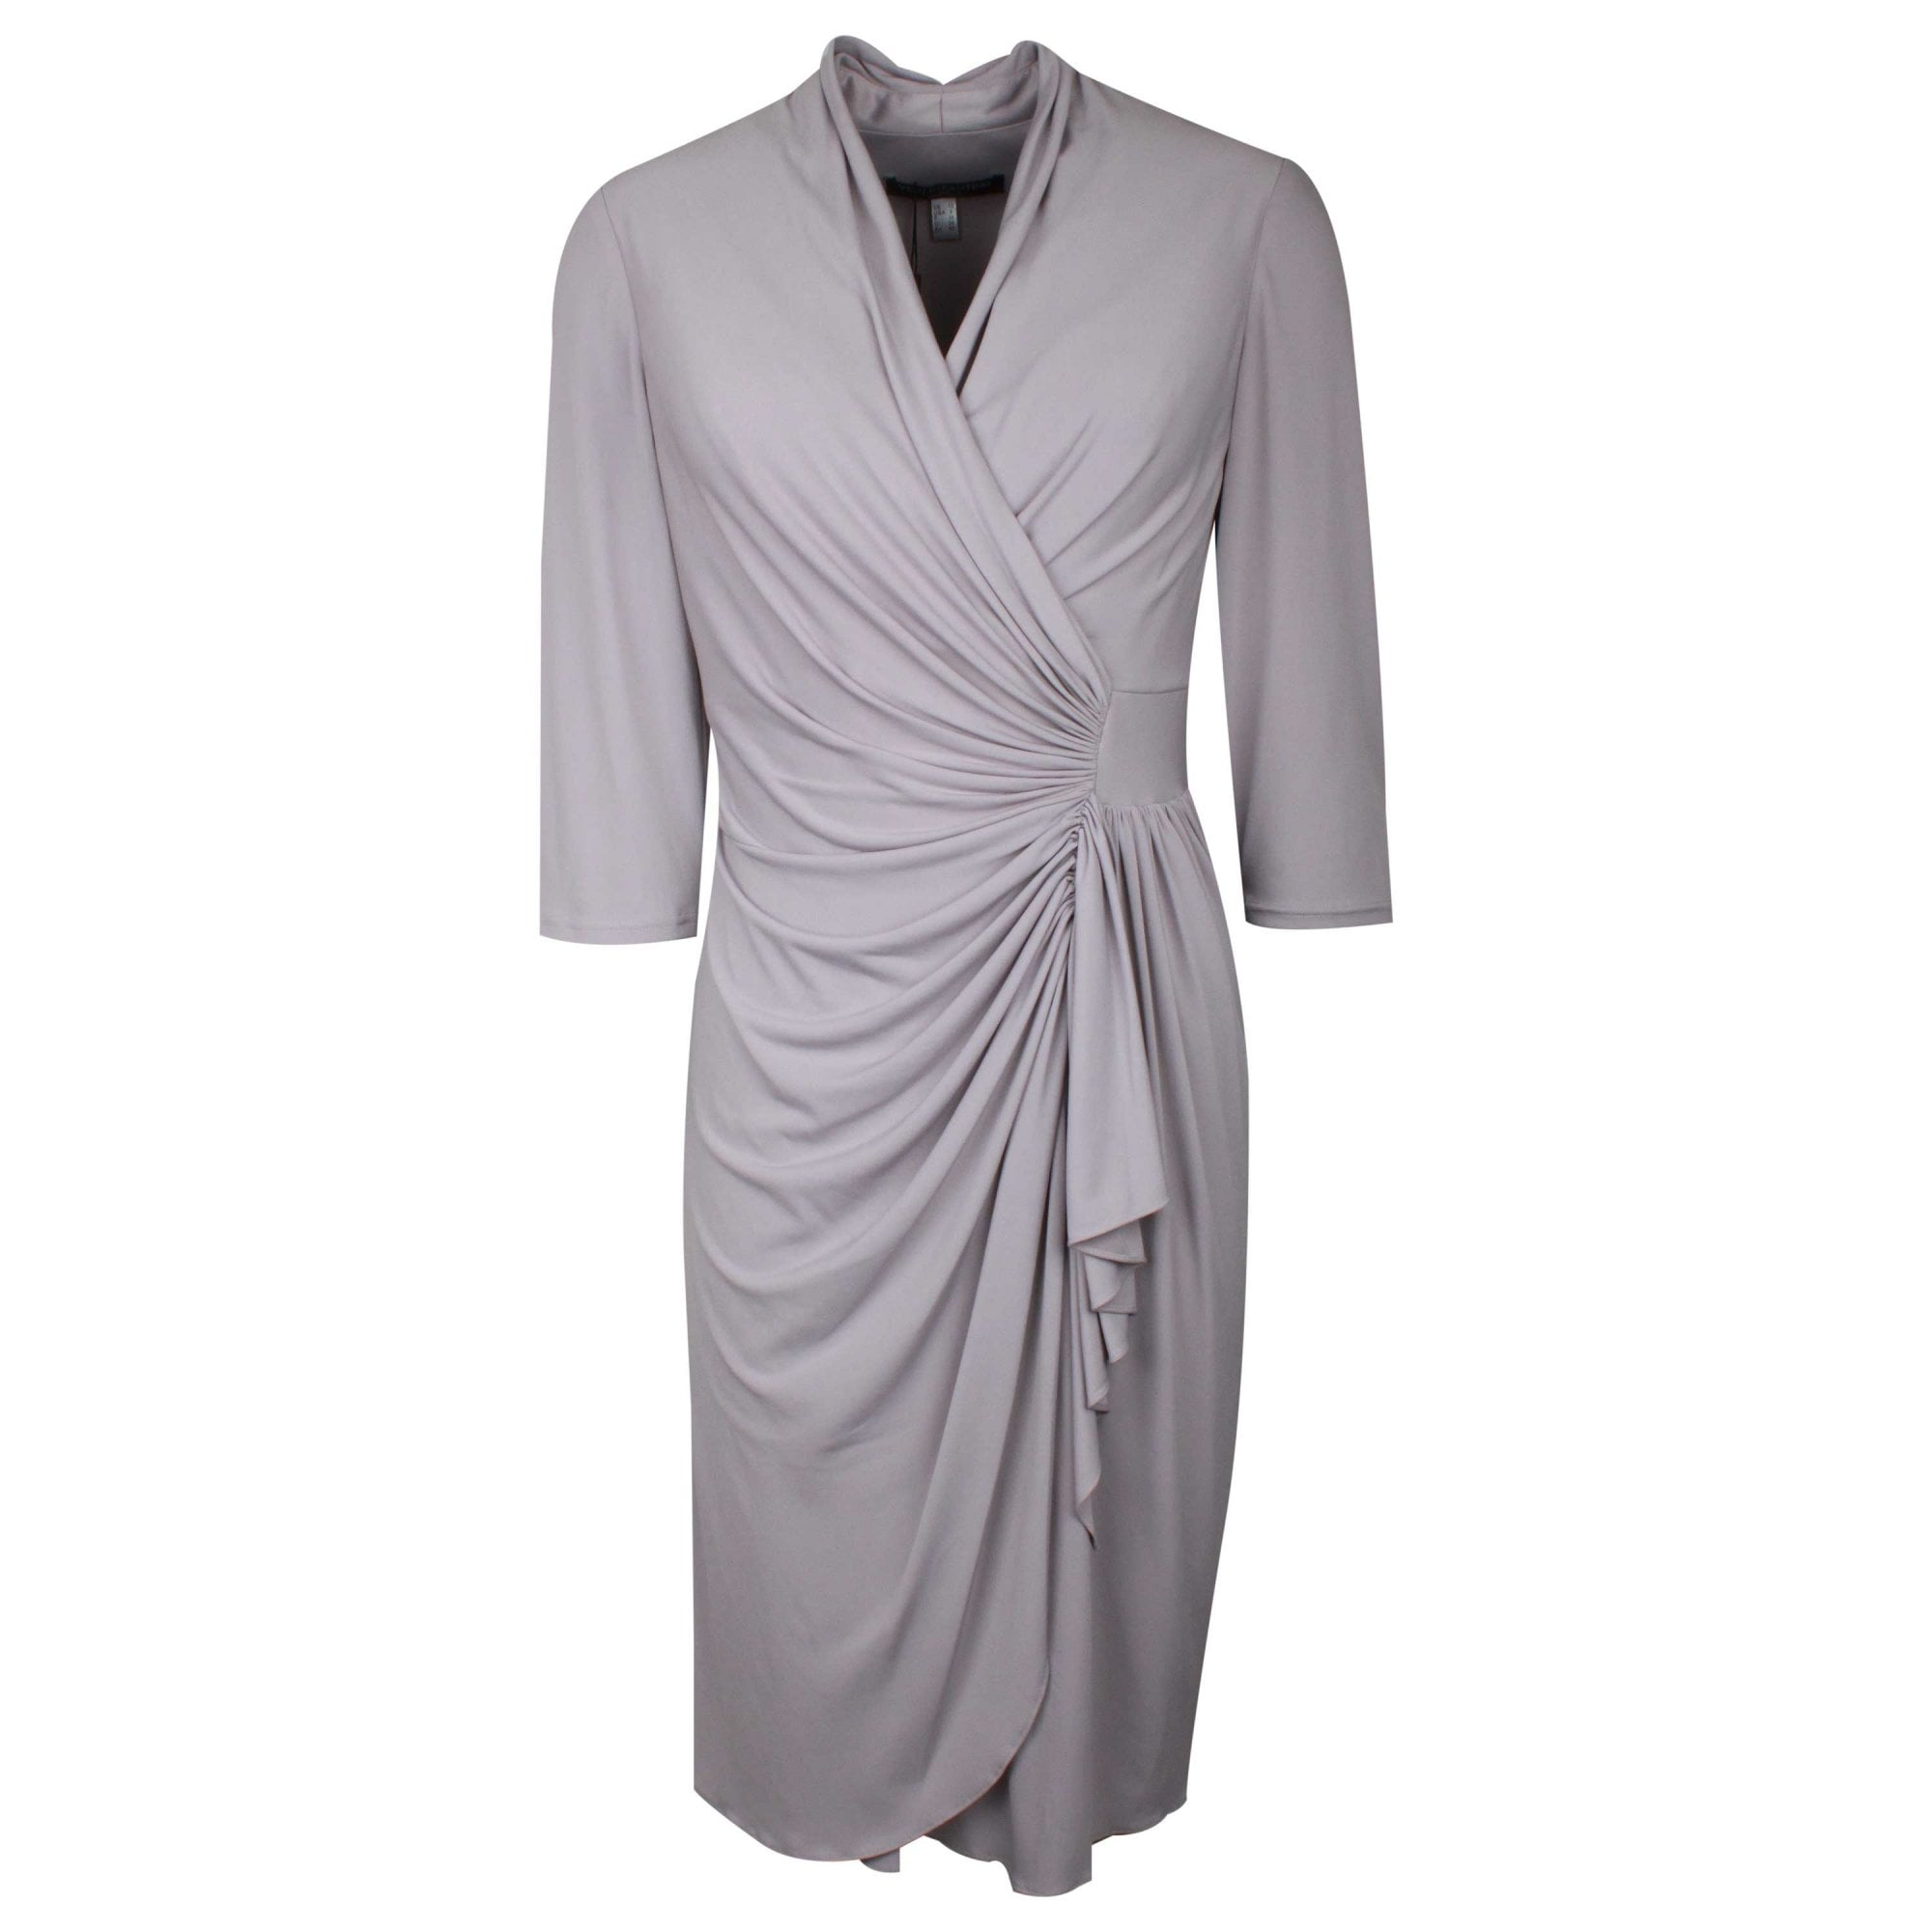 Grey French Jersey Drape Detail Dress By Ronald Joyce At Walk In Style